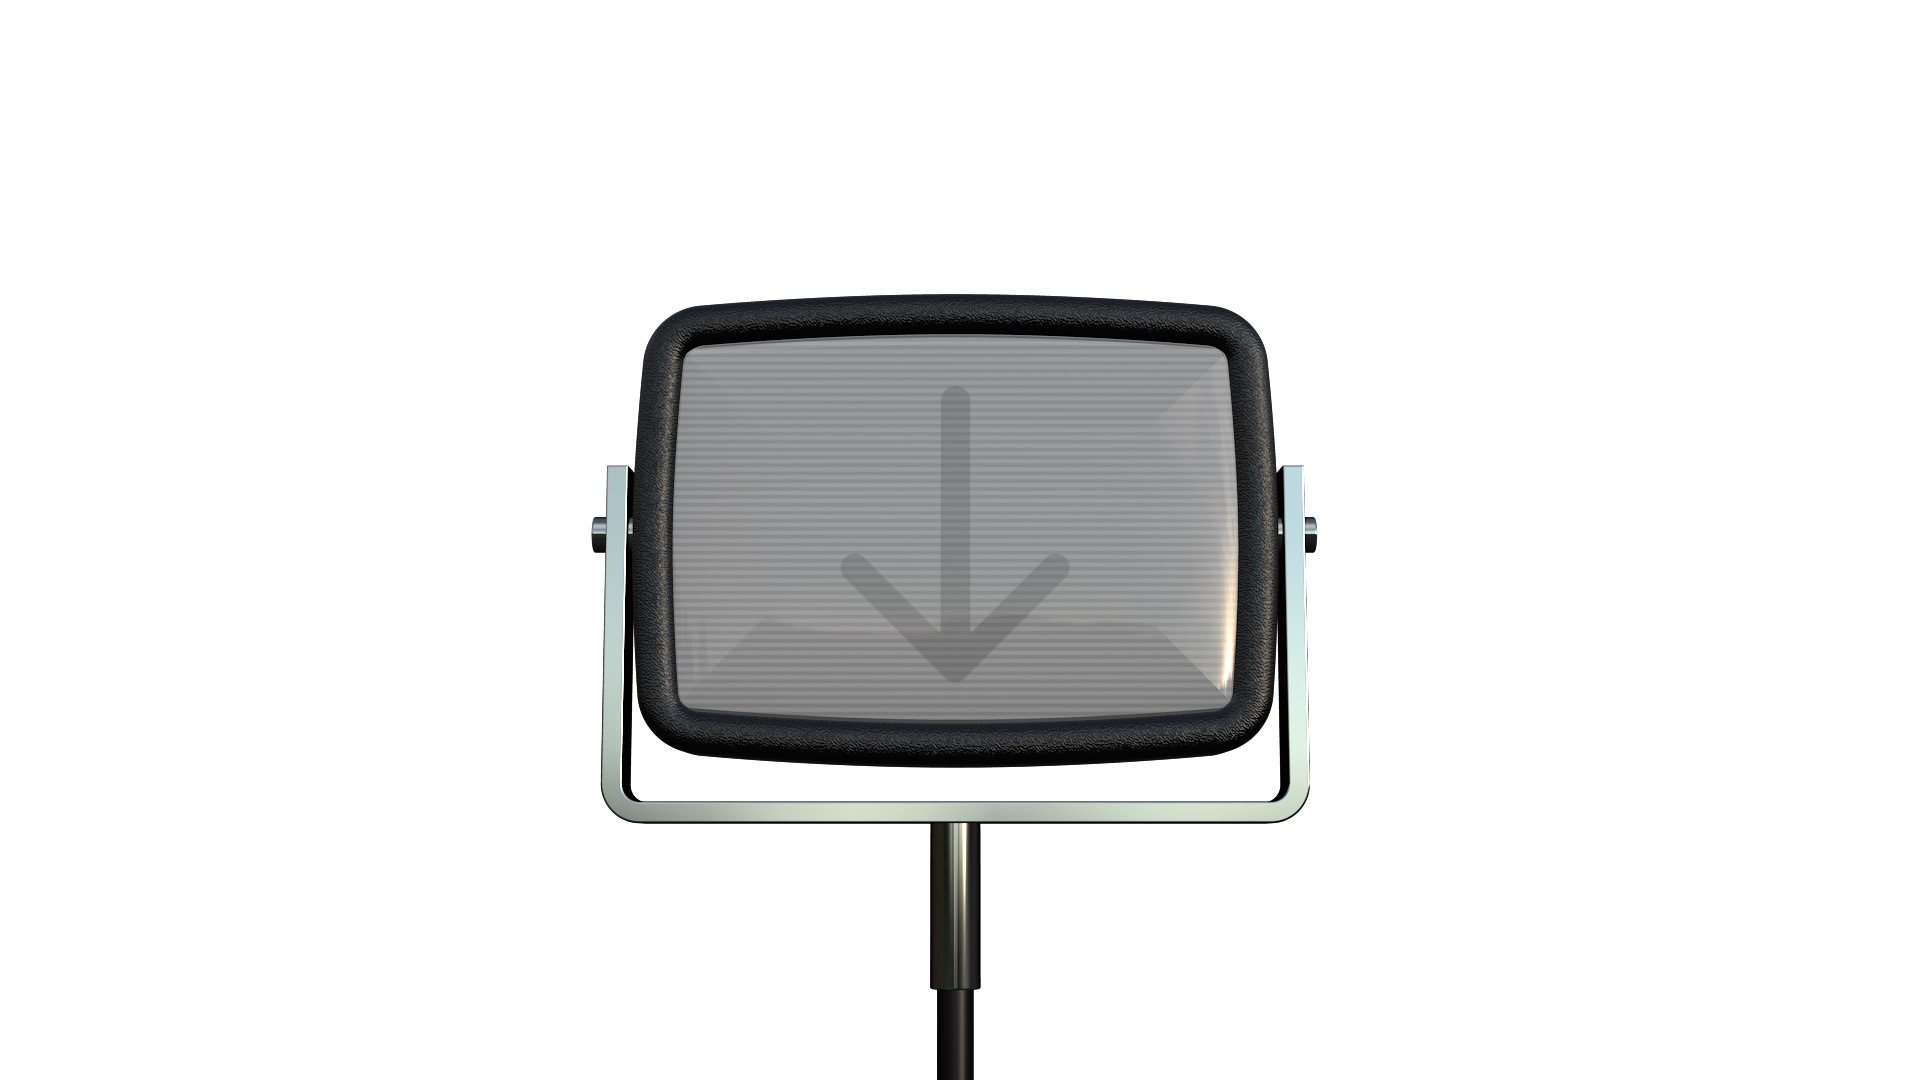 Hinged CRT User Guide